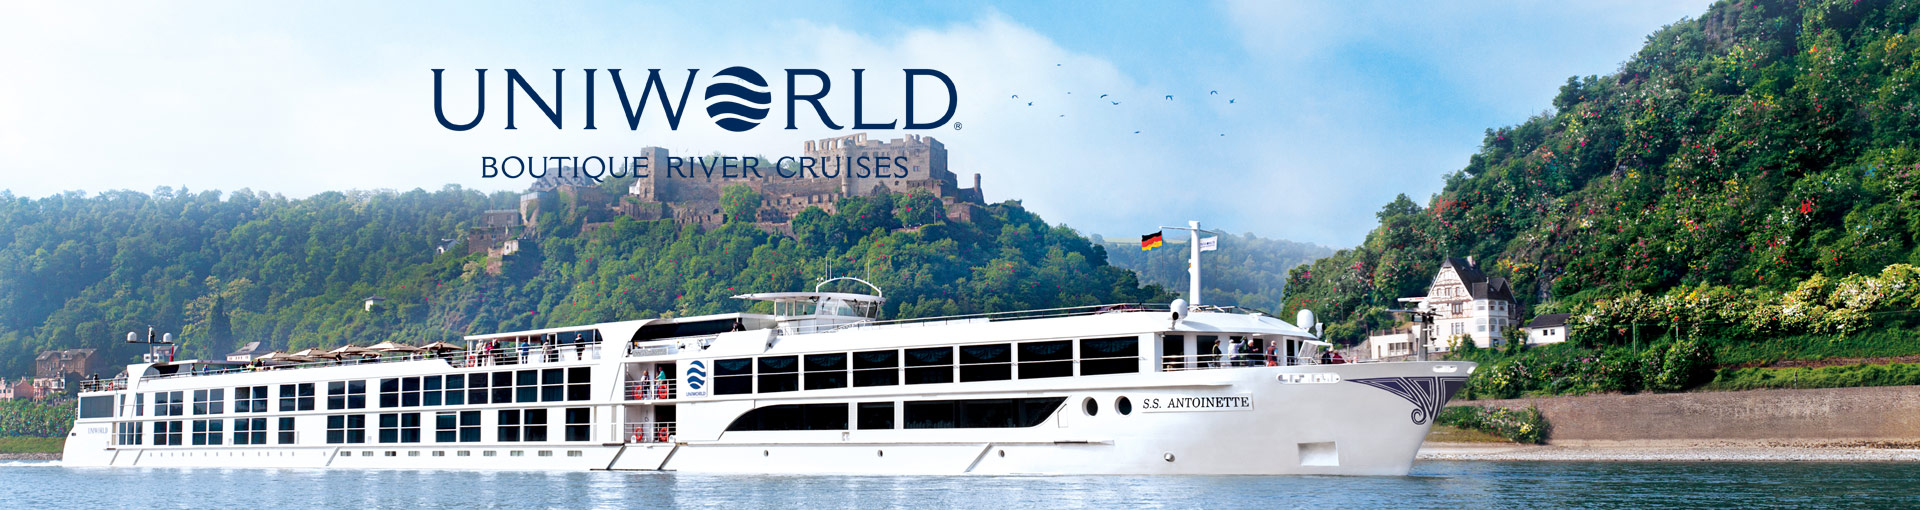 Already Booked with Uniworld Boutique River Cruises